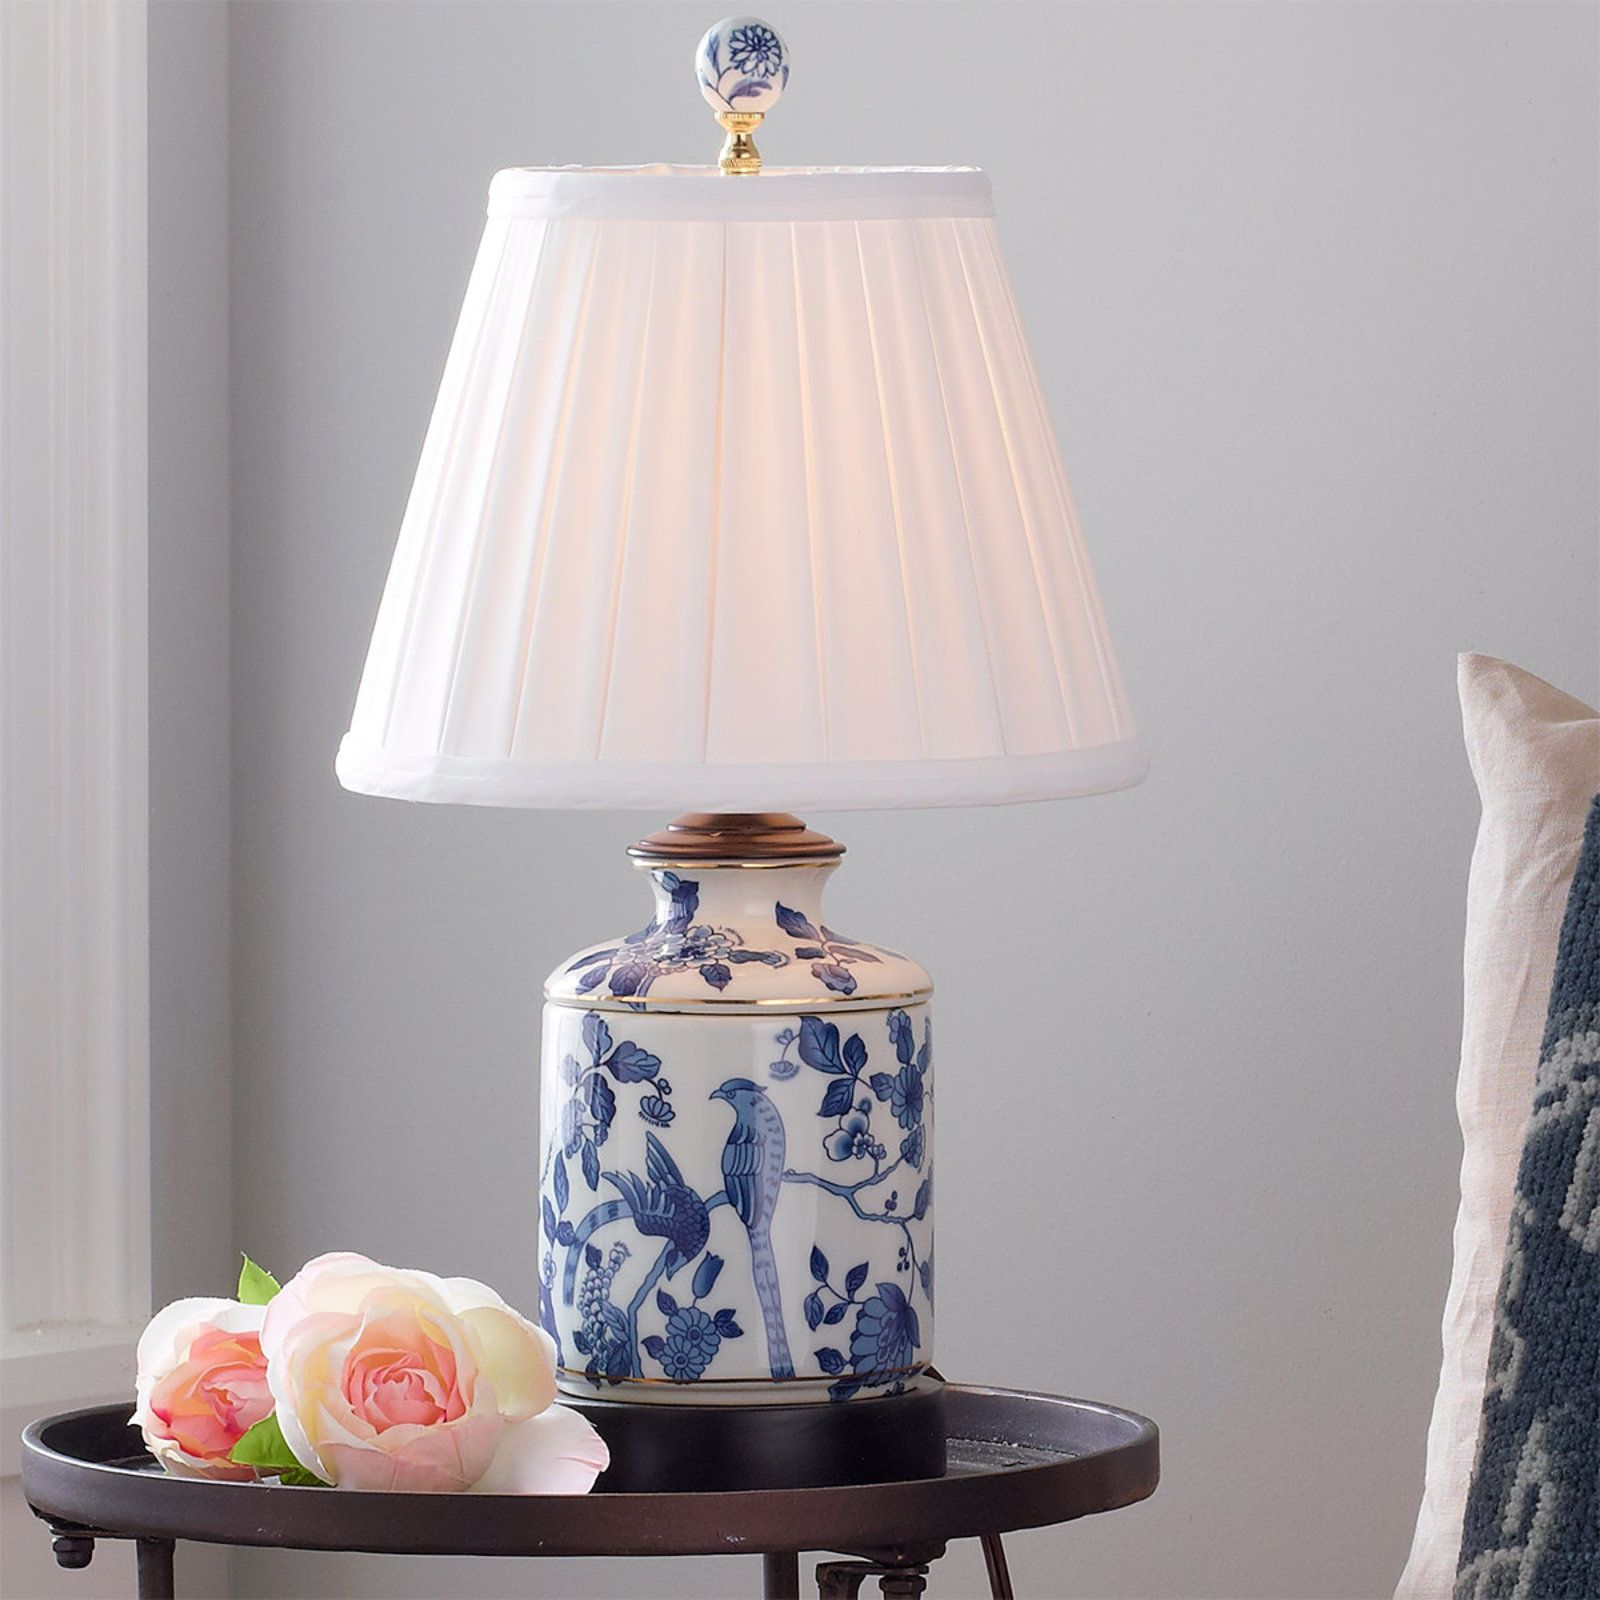 Table Lamps Luxury Table Lamps Designer Table Lamps Blue And White Lamp Blue White Decor Luxury Table Lamps